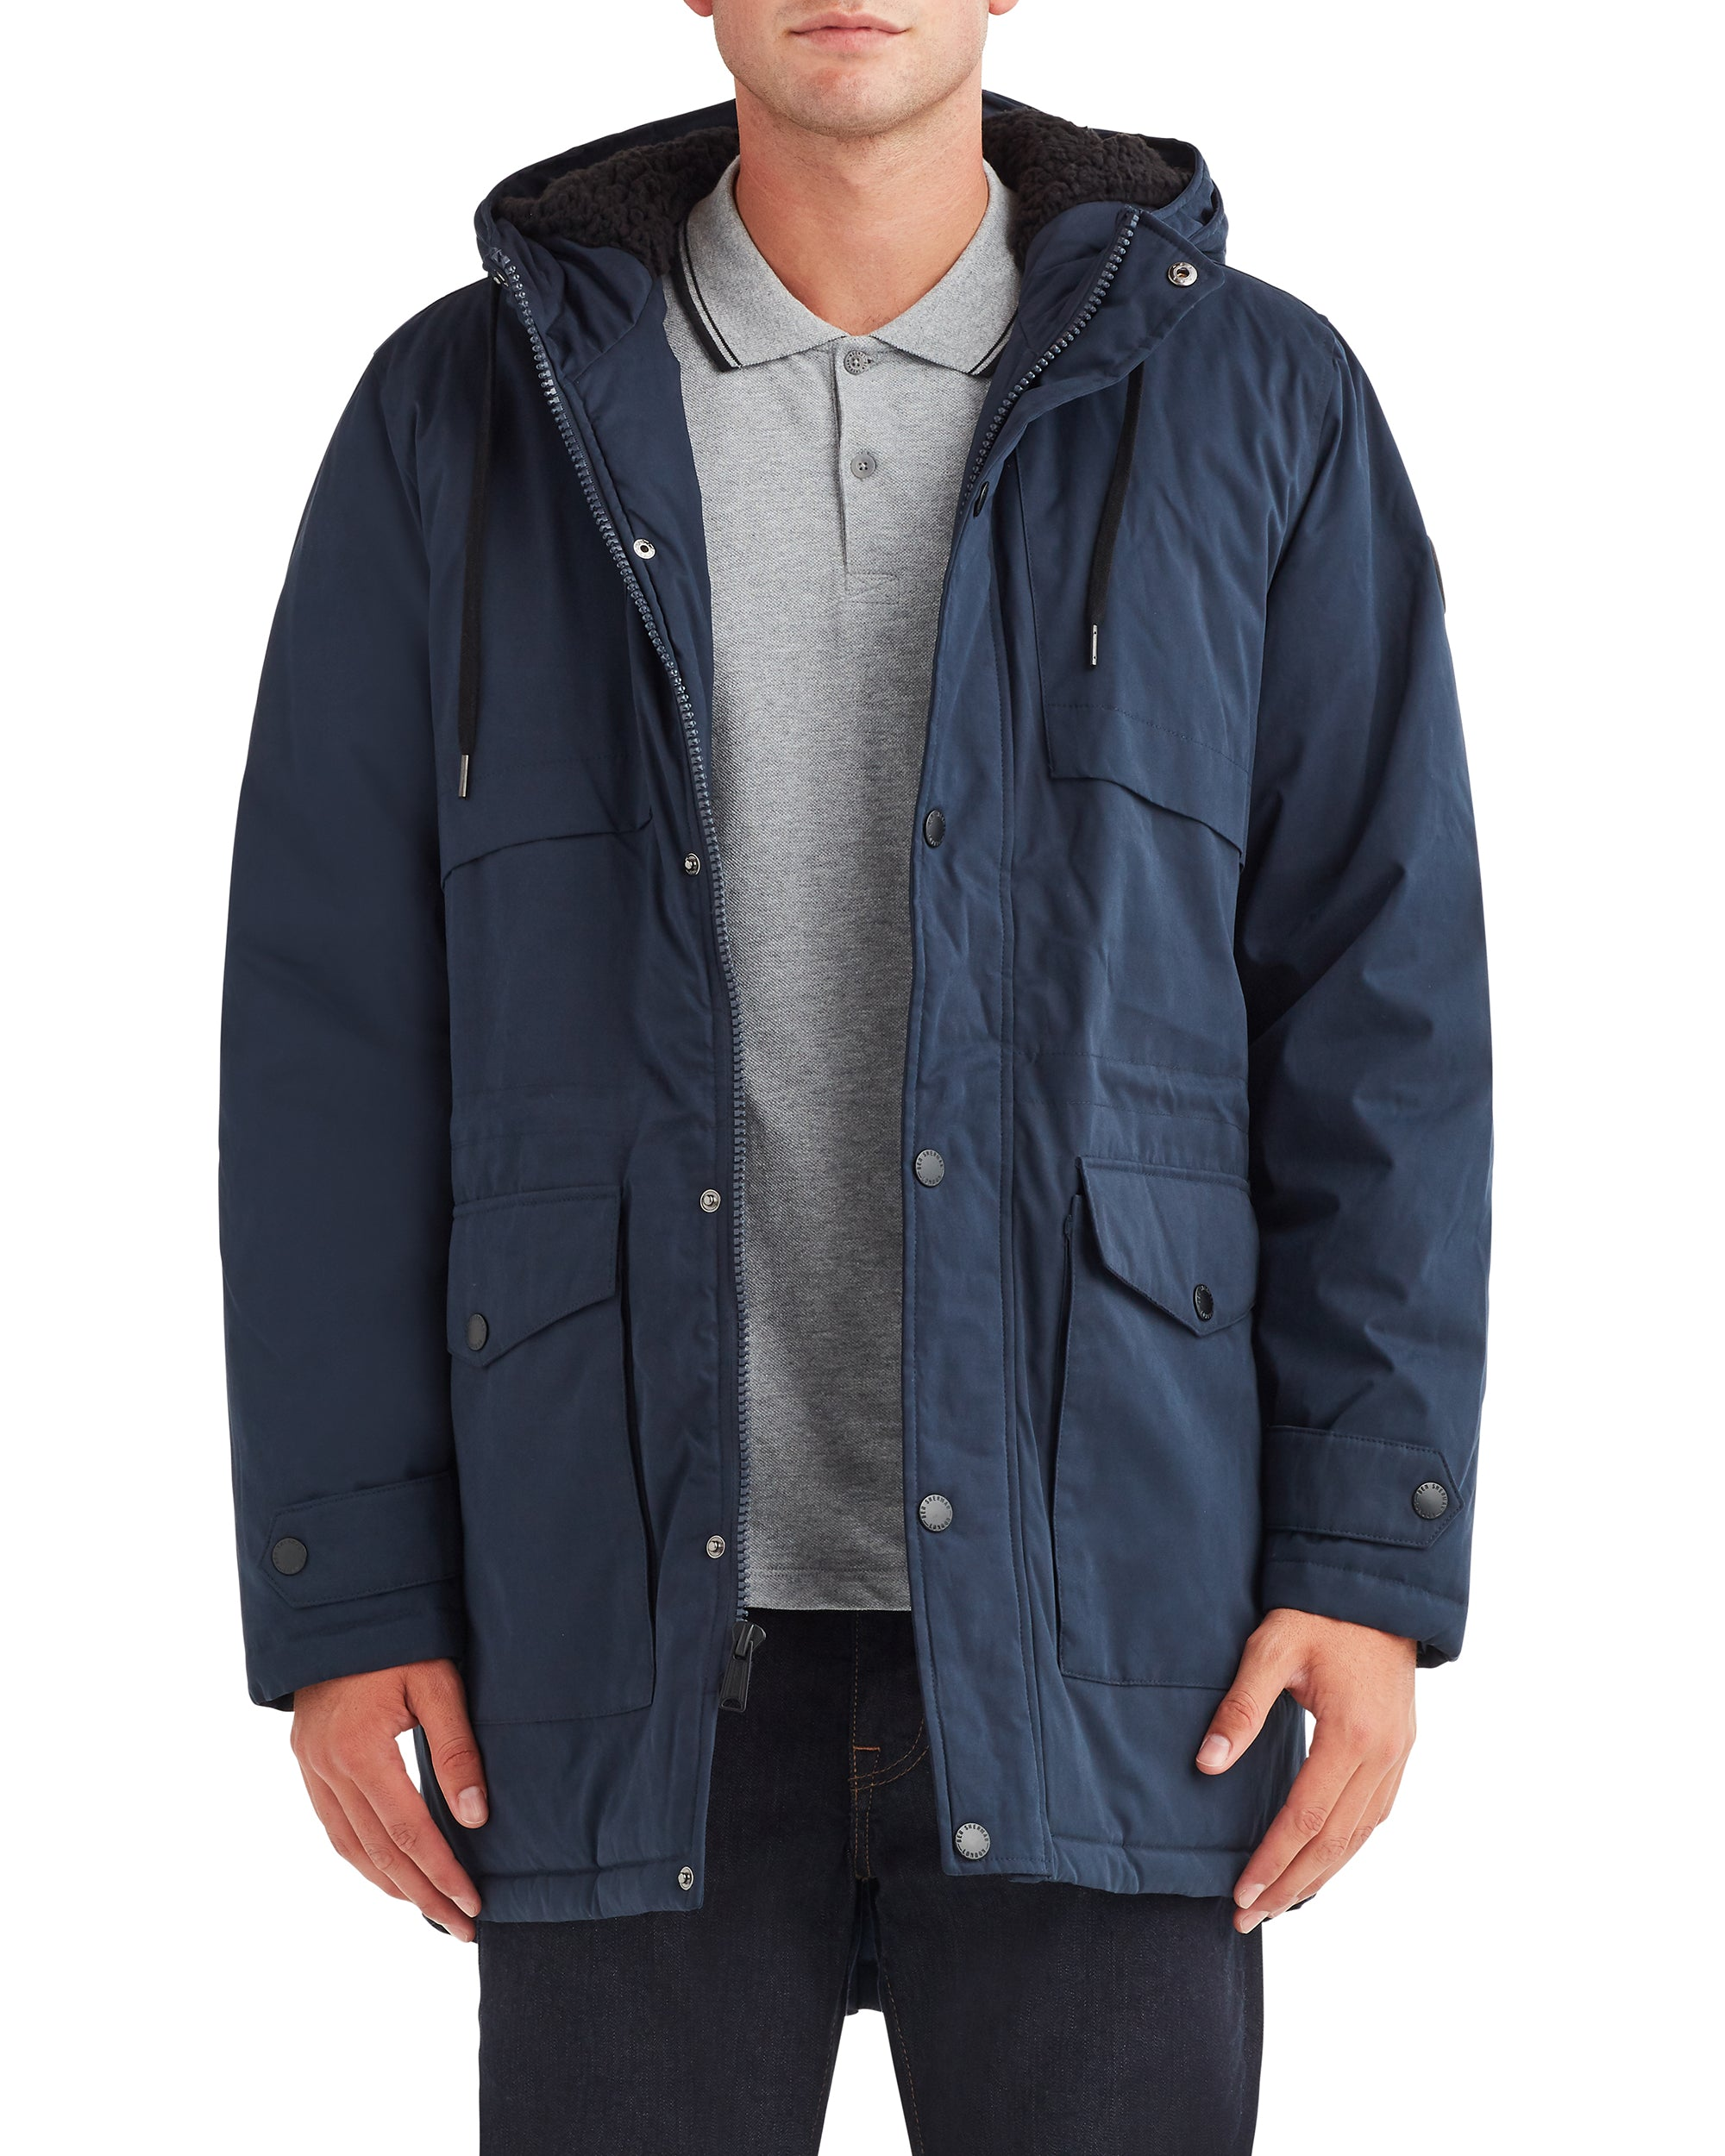 Men's Long Fashion Parka  - Navy Blazer